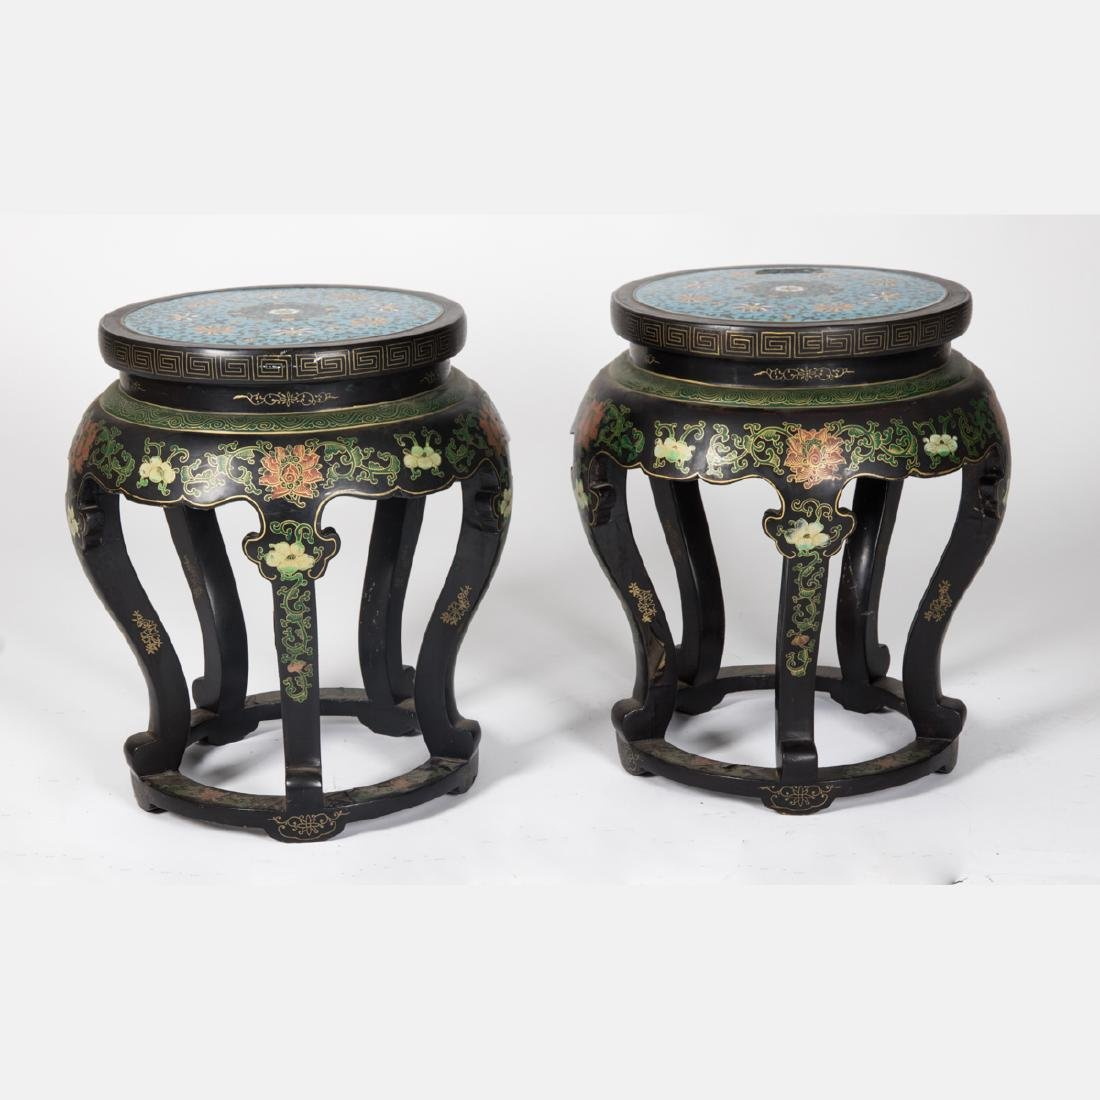 A Pair of Chinese Cloisonné and Painted Wood Pedestals, - 2